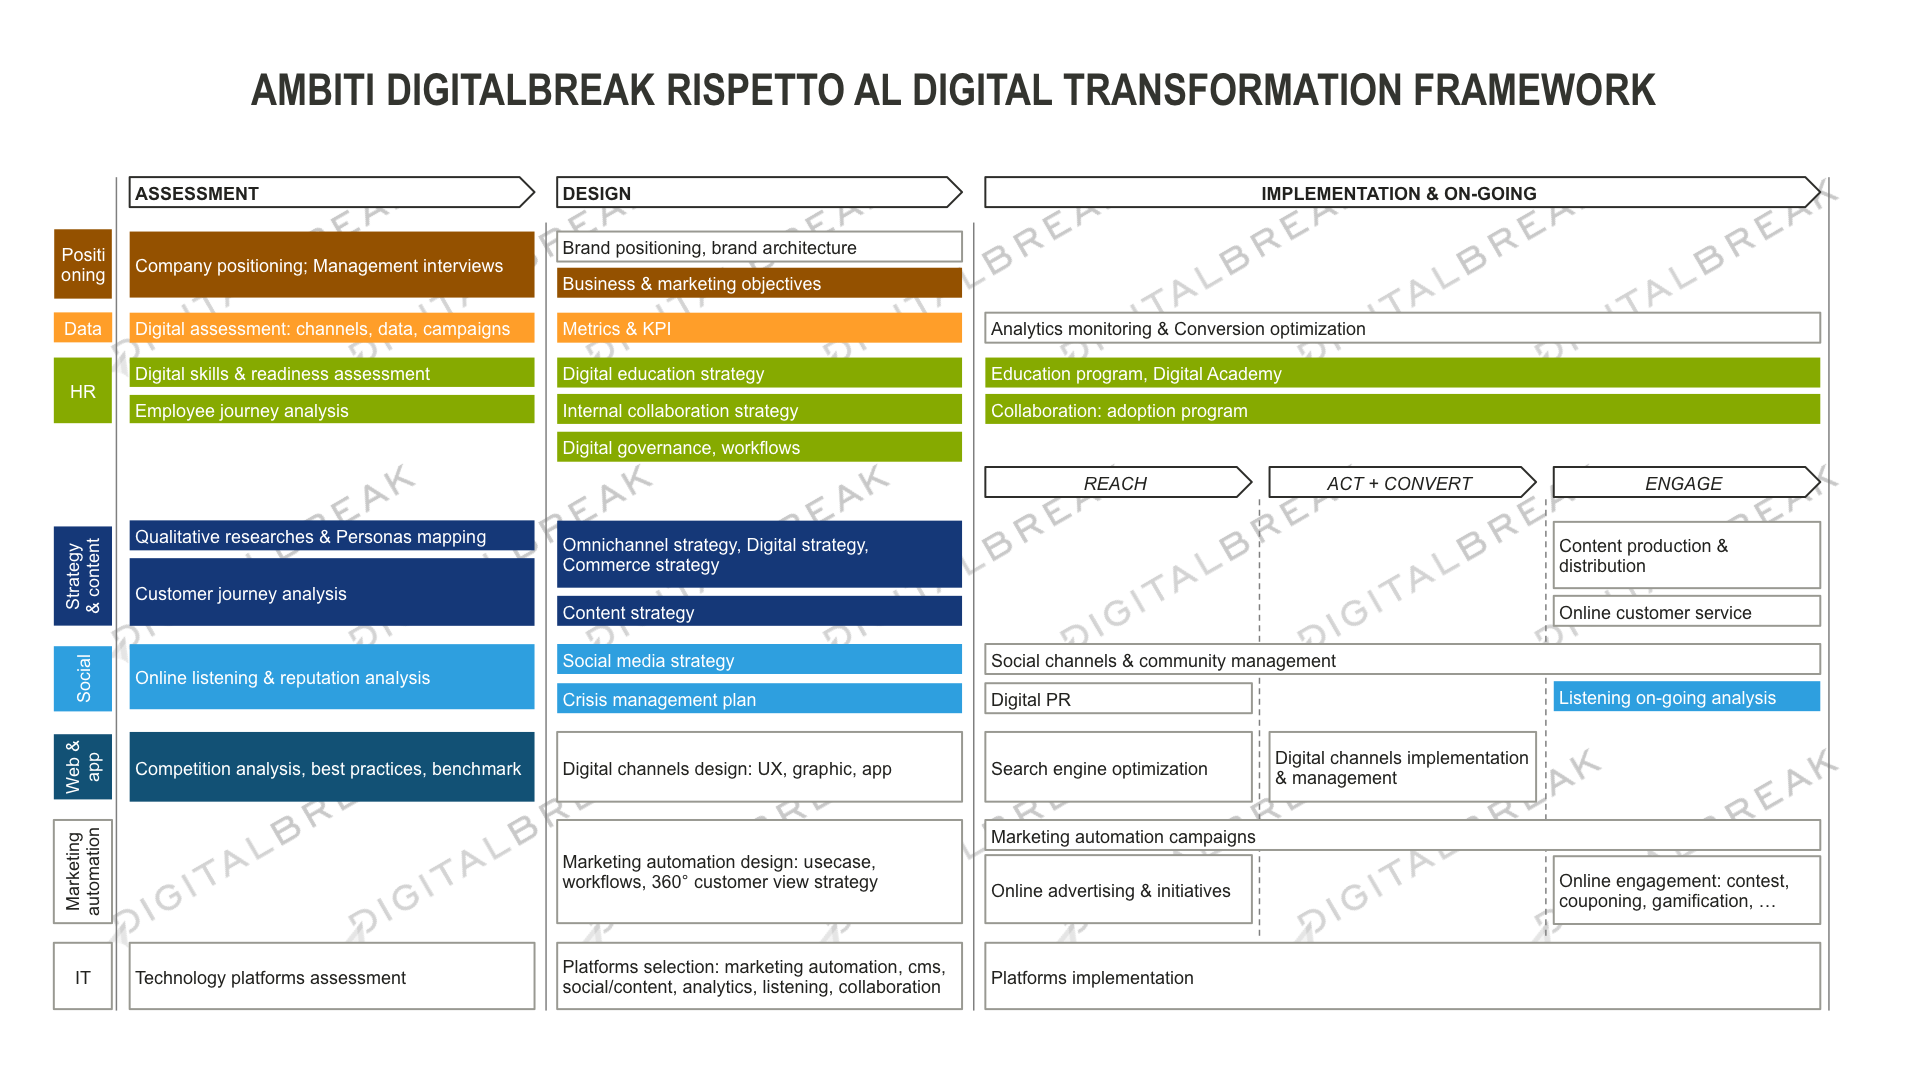 ambiti-digitalbreak-rispetto-al-digital-transformation-framework